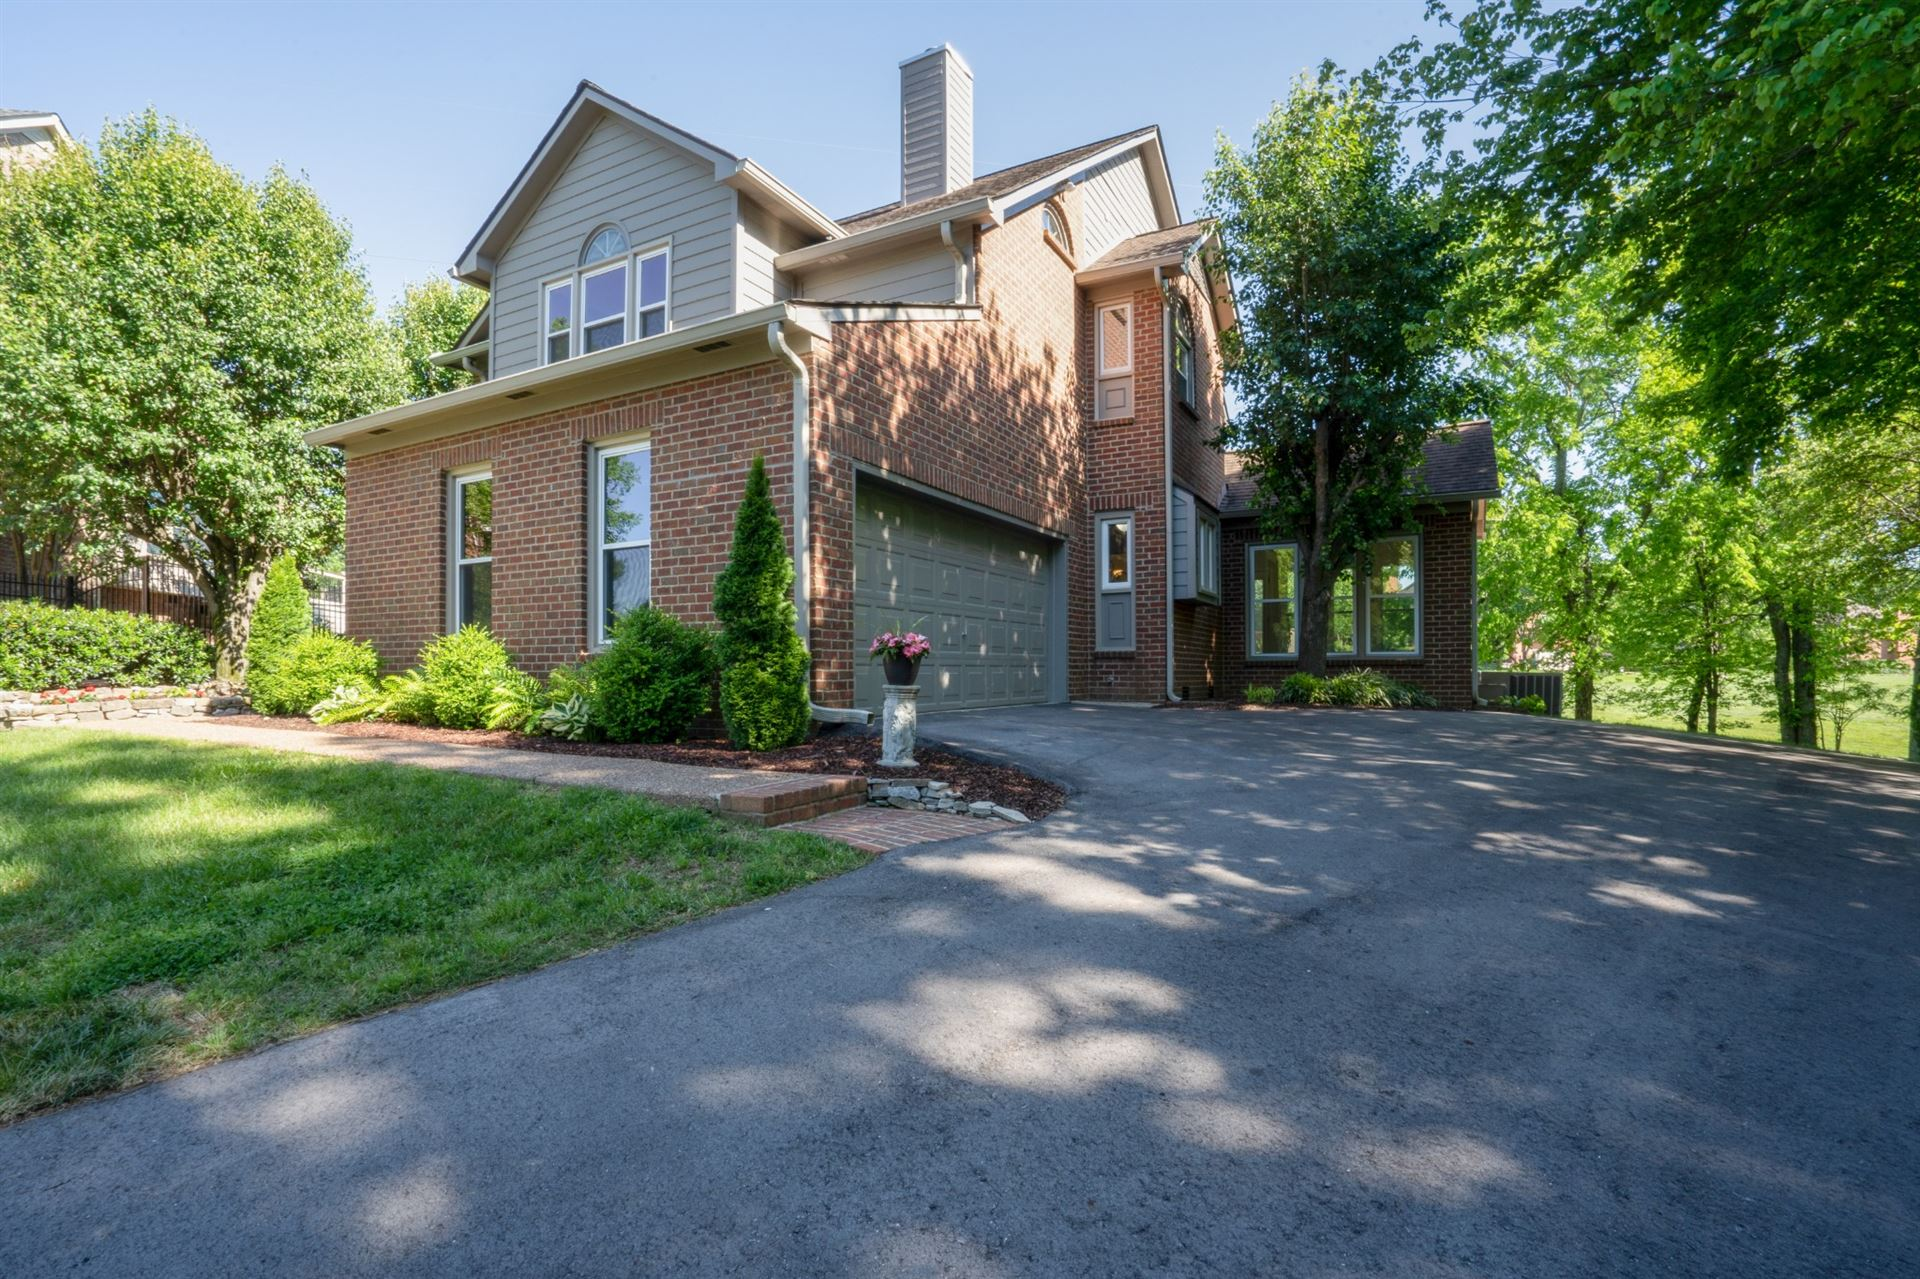 Photo of 661 Pembroake Ln, Franklin, TN 37064 (MLS # 2253154)